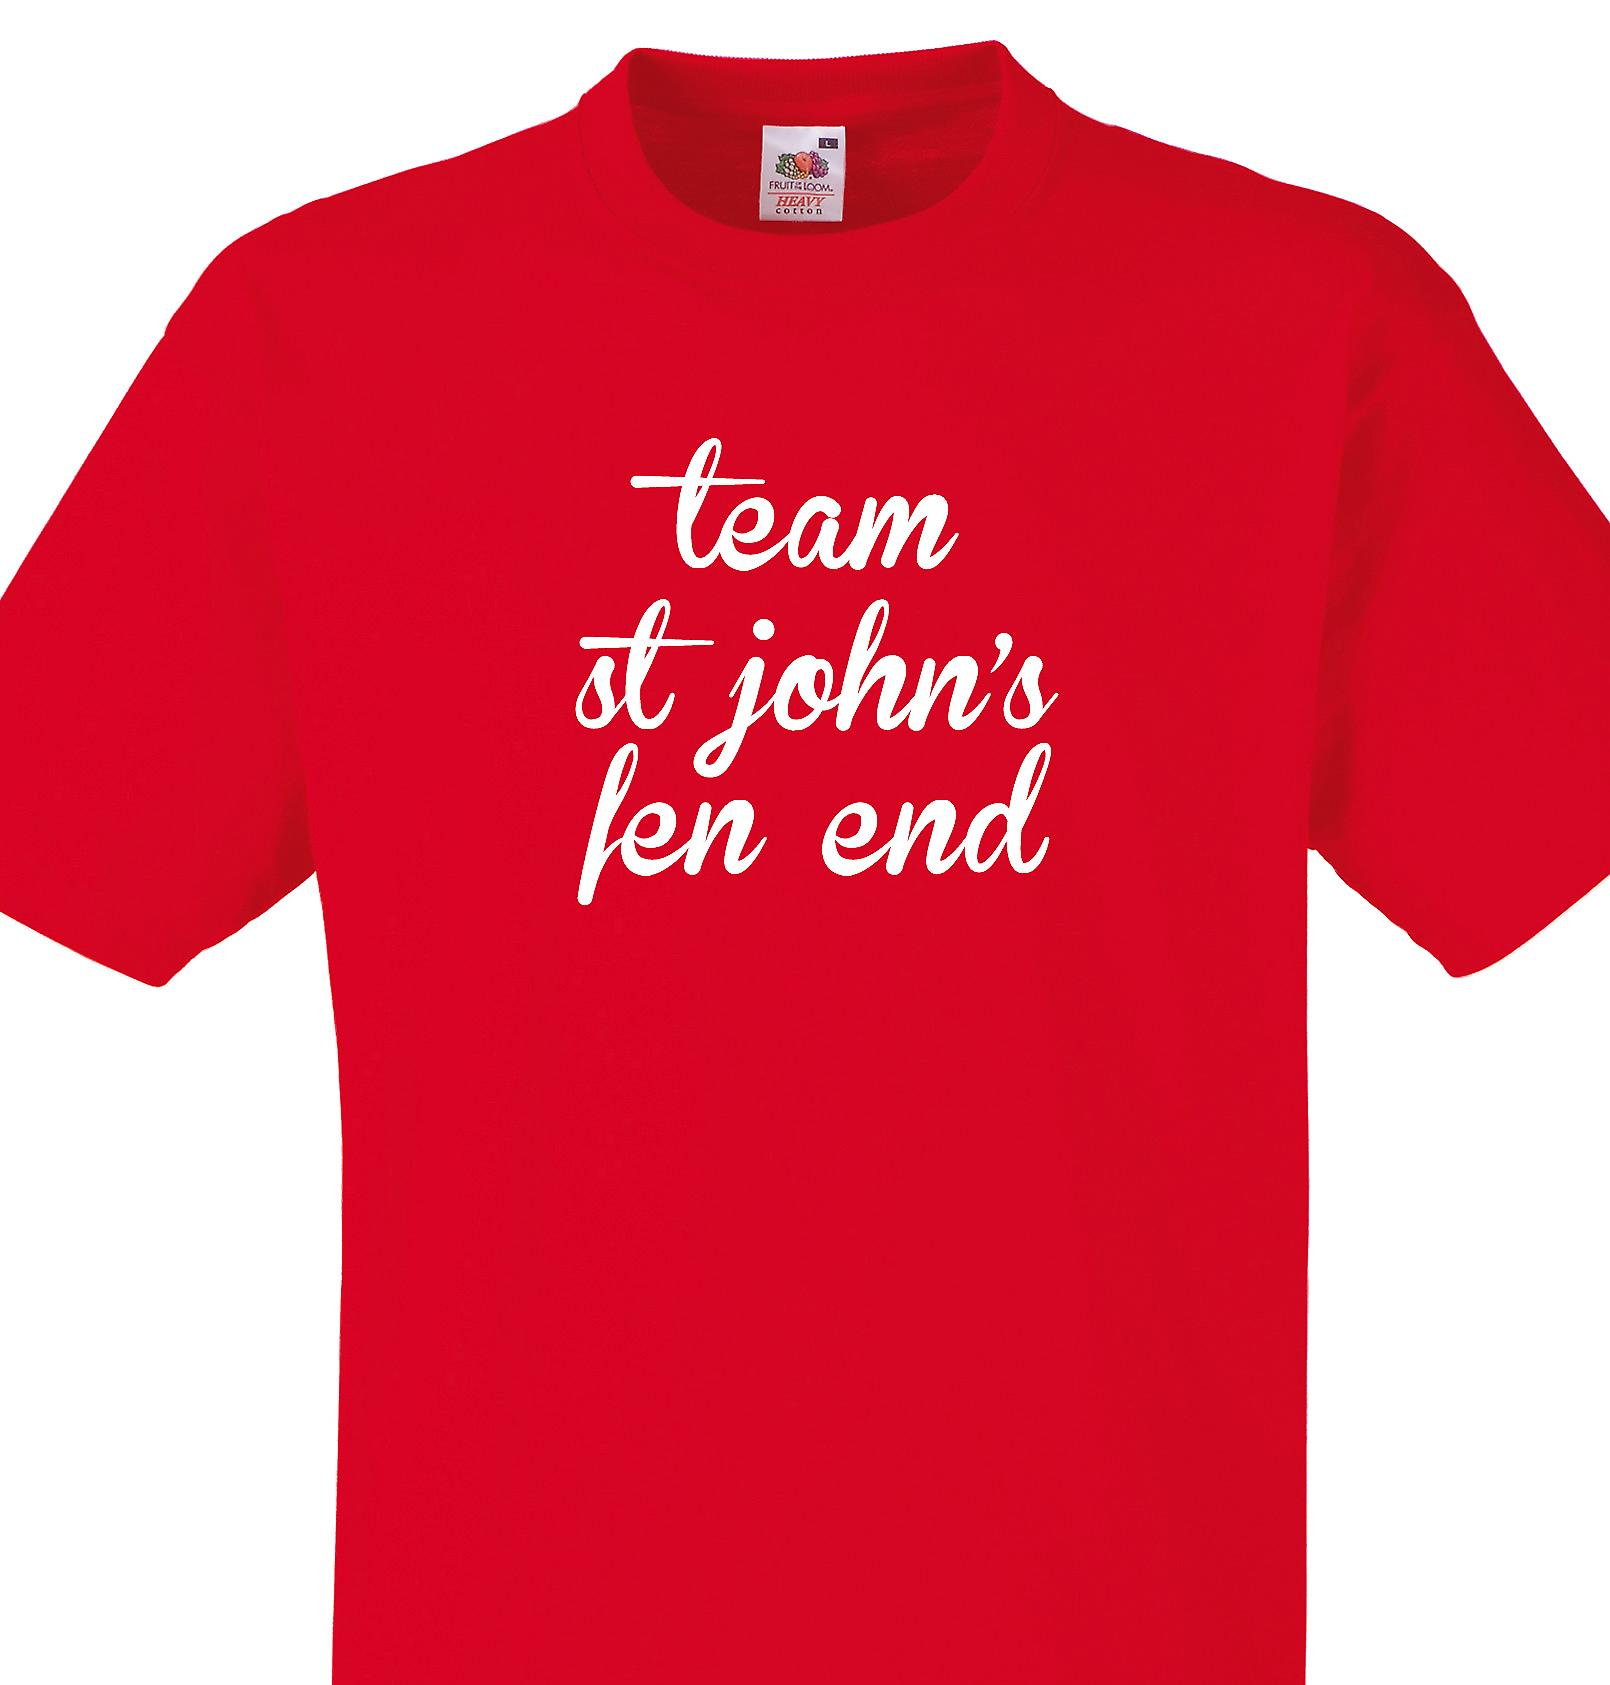 Team St john's fen end Red T shirt